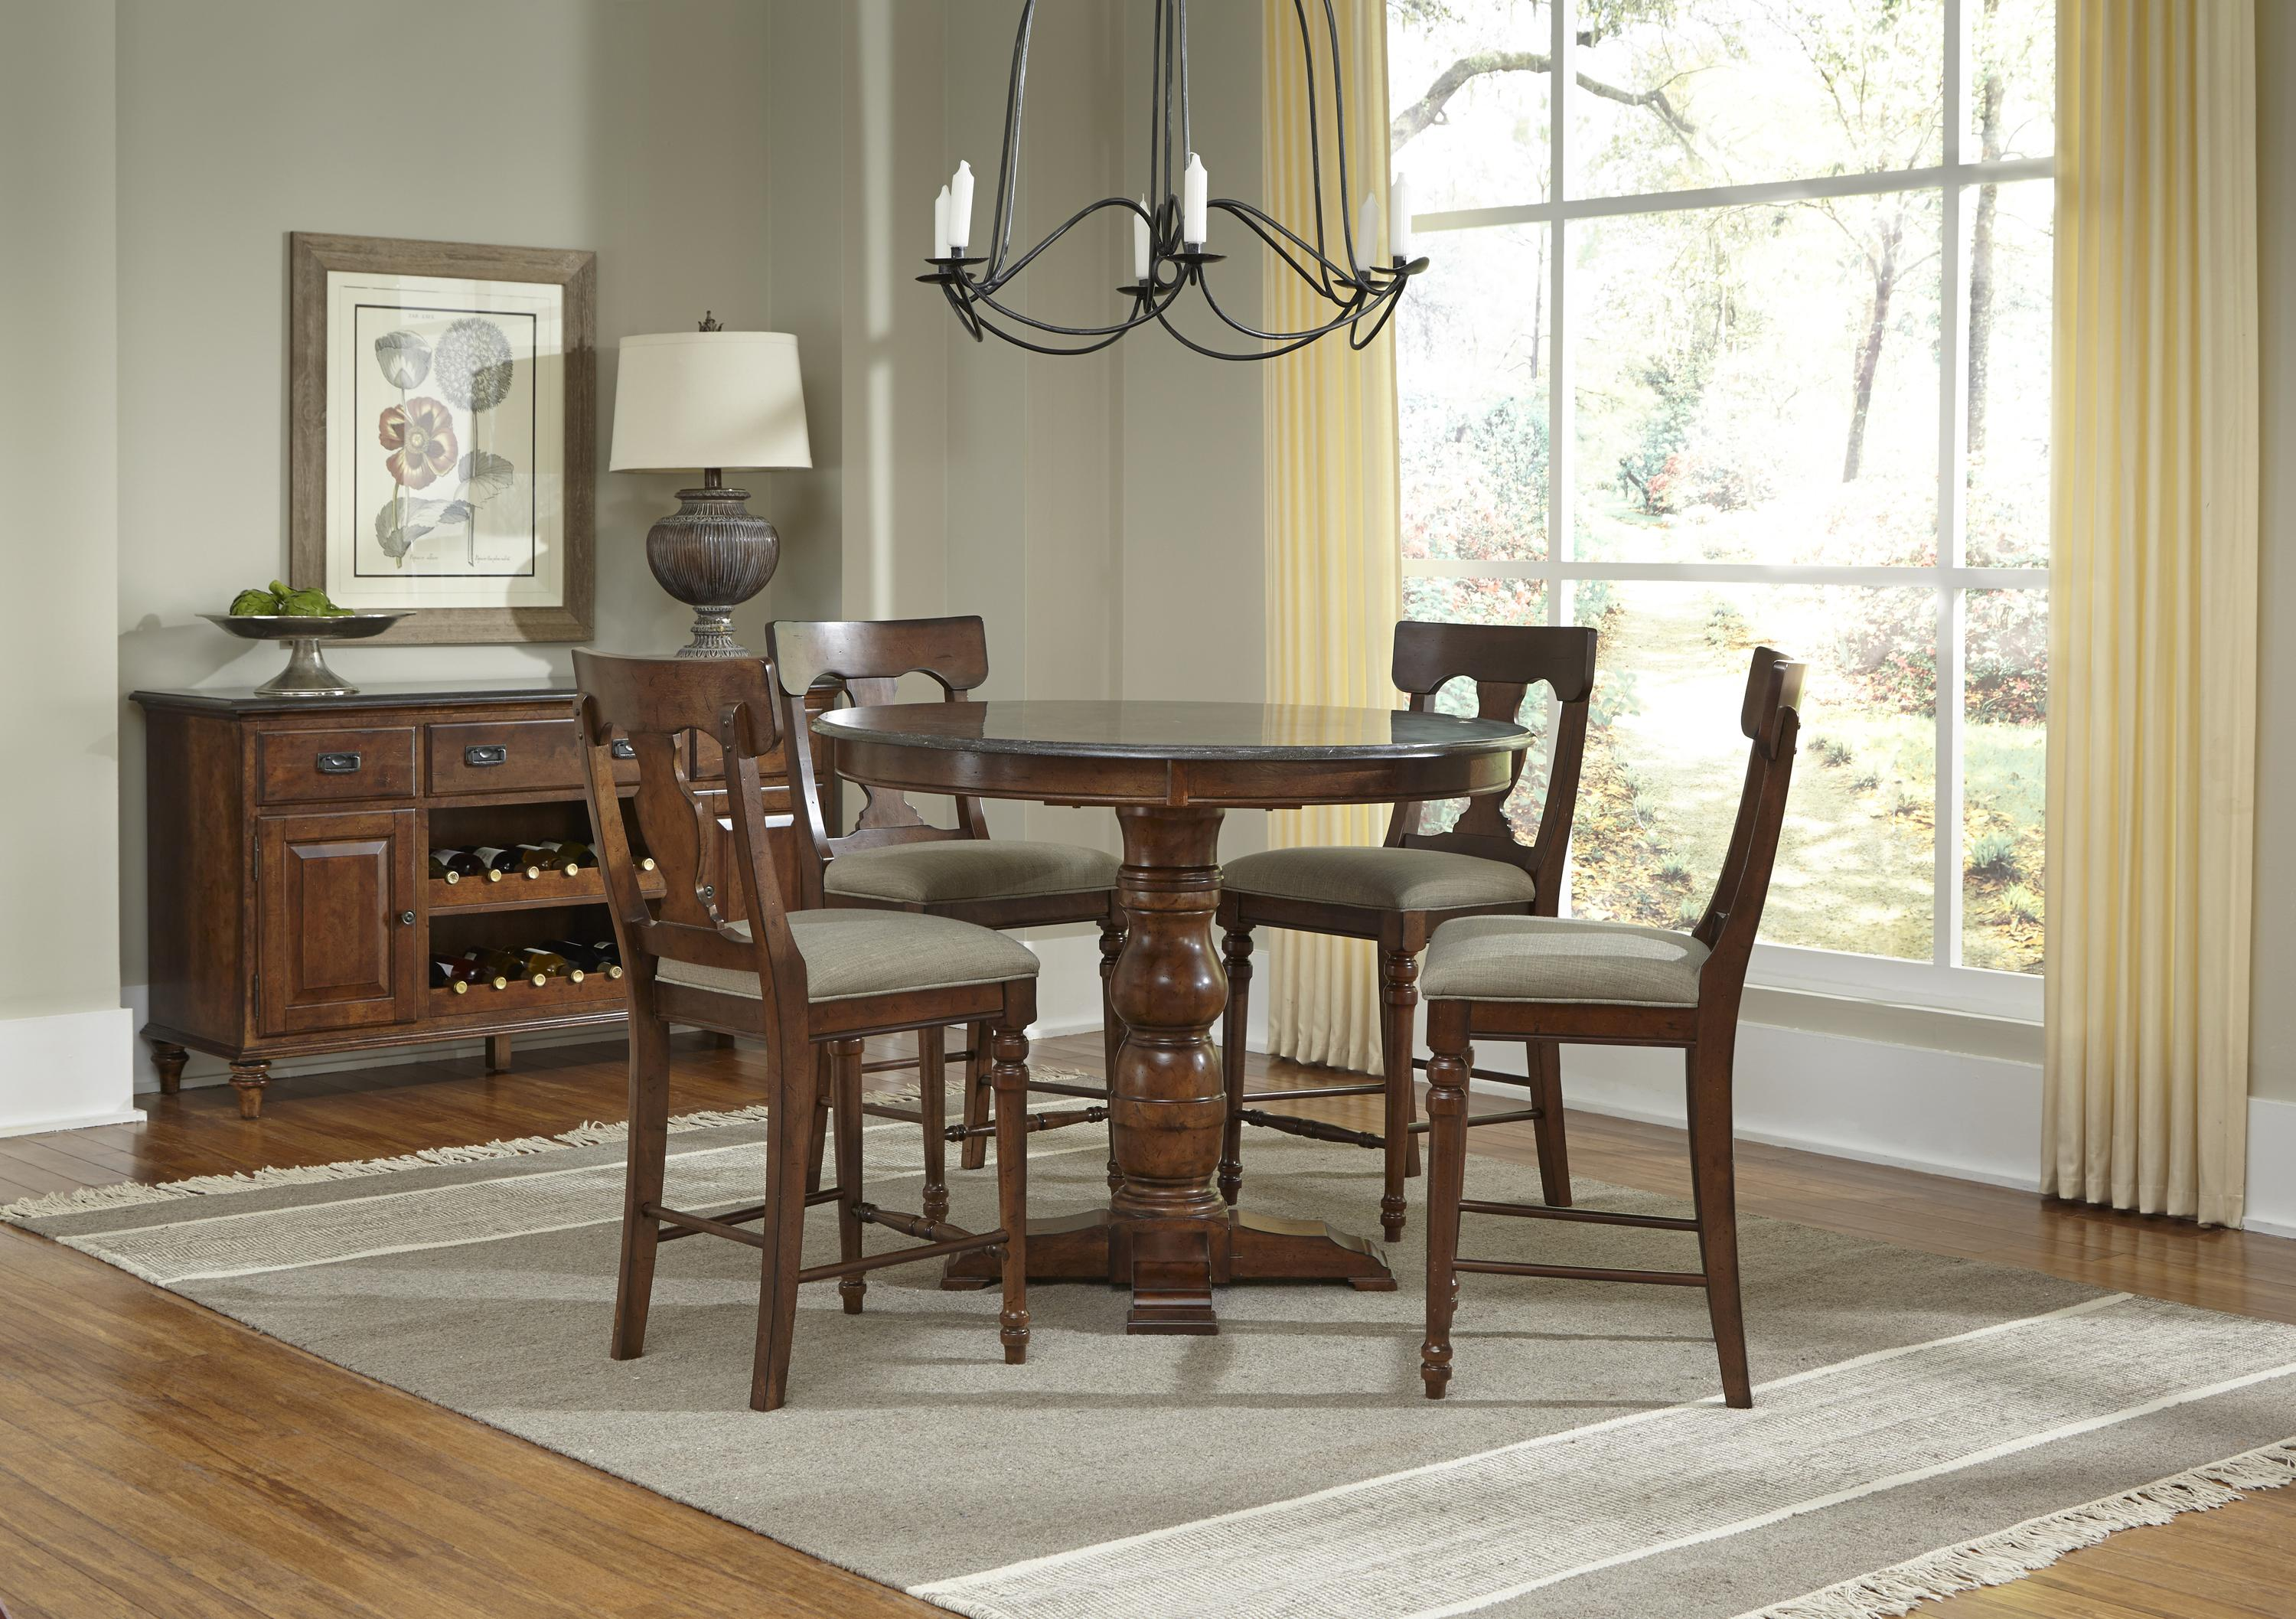 AAmerica Andover Park Dining Room Group - Item Number: ADV Dining Rroom Group 2